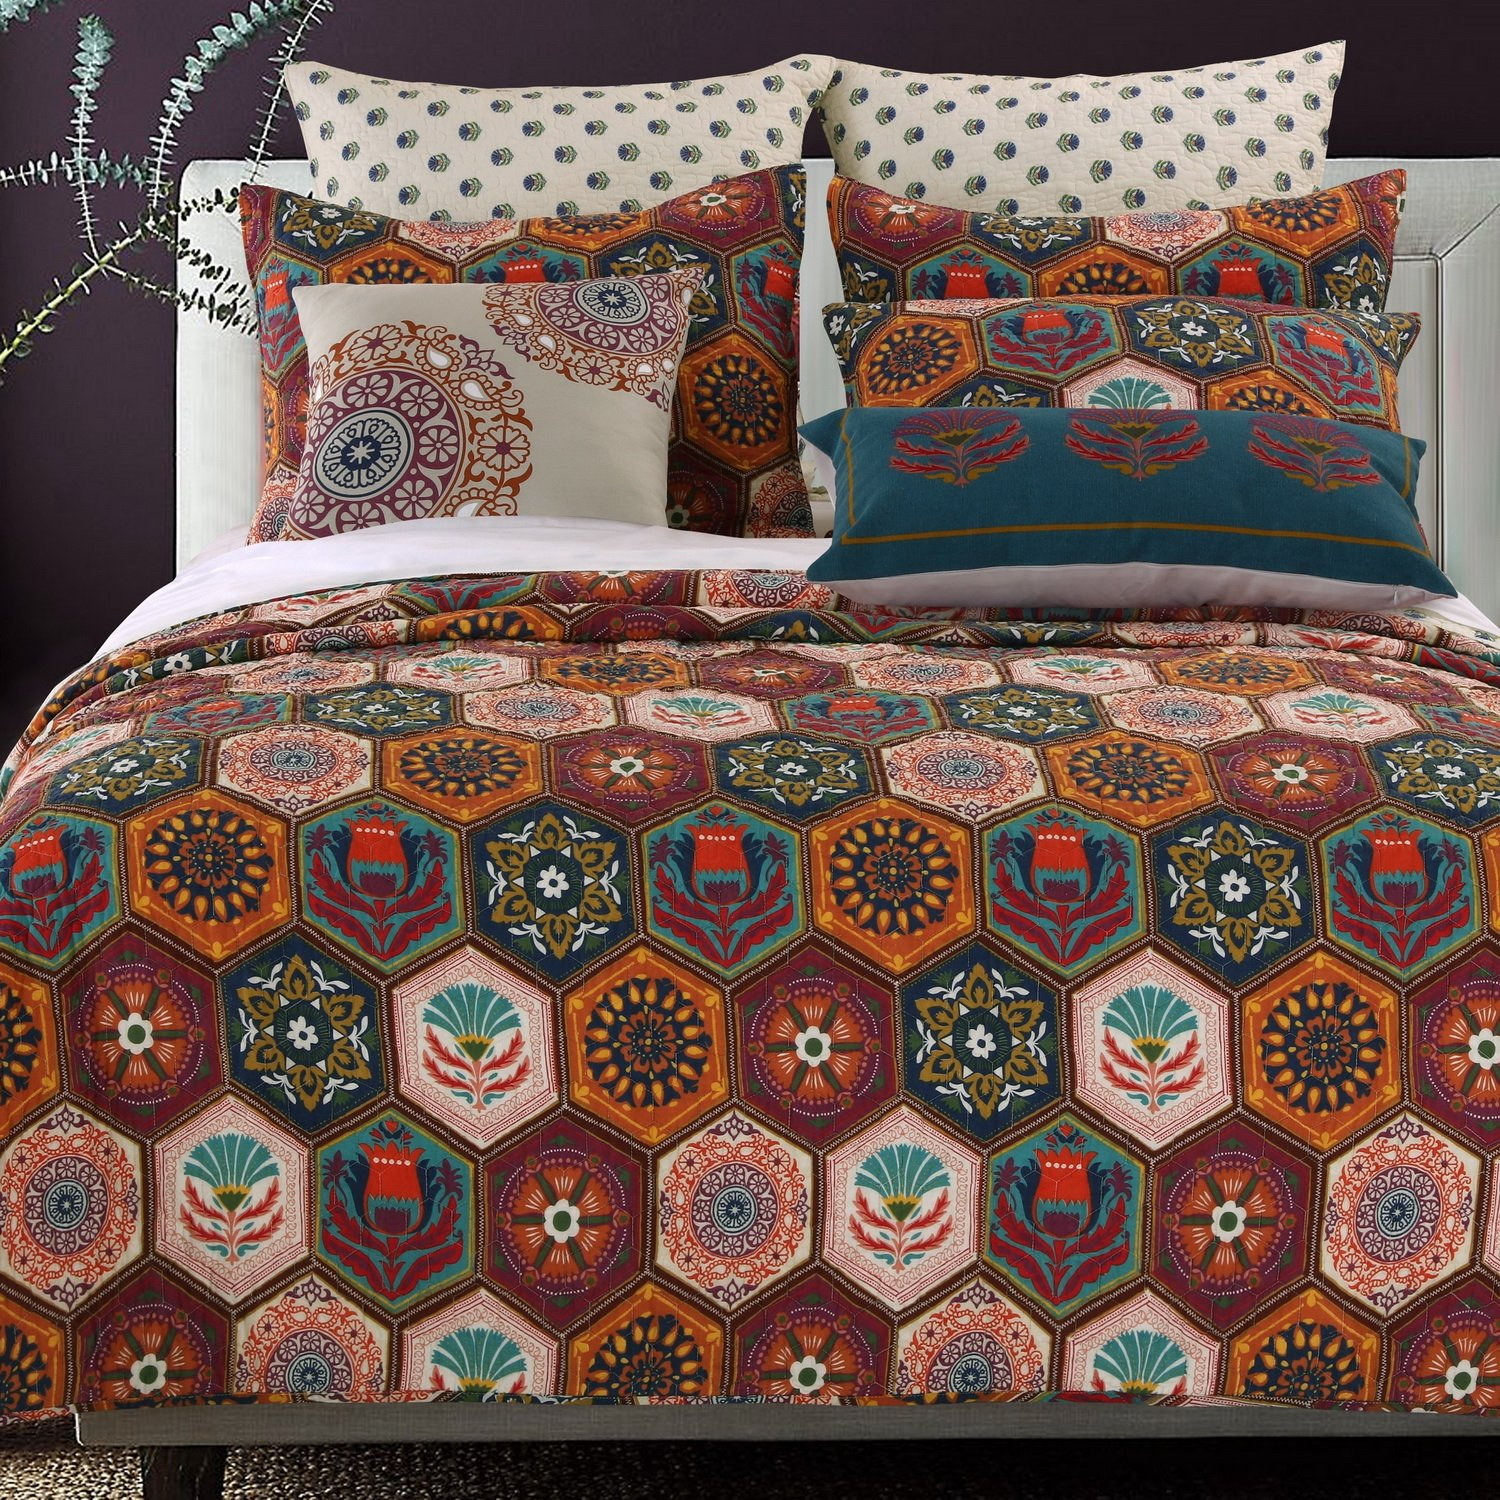 Boho Moroccan Quilt Set with Shams Geometric Pattern Medallion Mandala Earth Tones Orange Brown 100 Cotton Luxury Reversible 2 Piece Twin Size Print Bedding - Includes Bed Sheet Straps by Finely Stitched (Image #1)